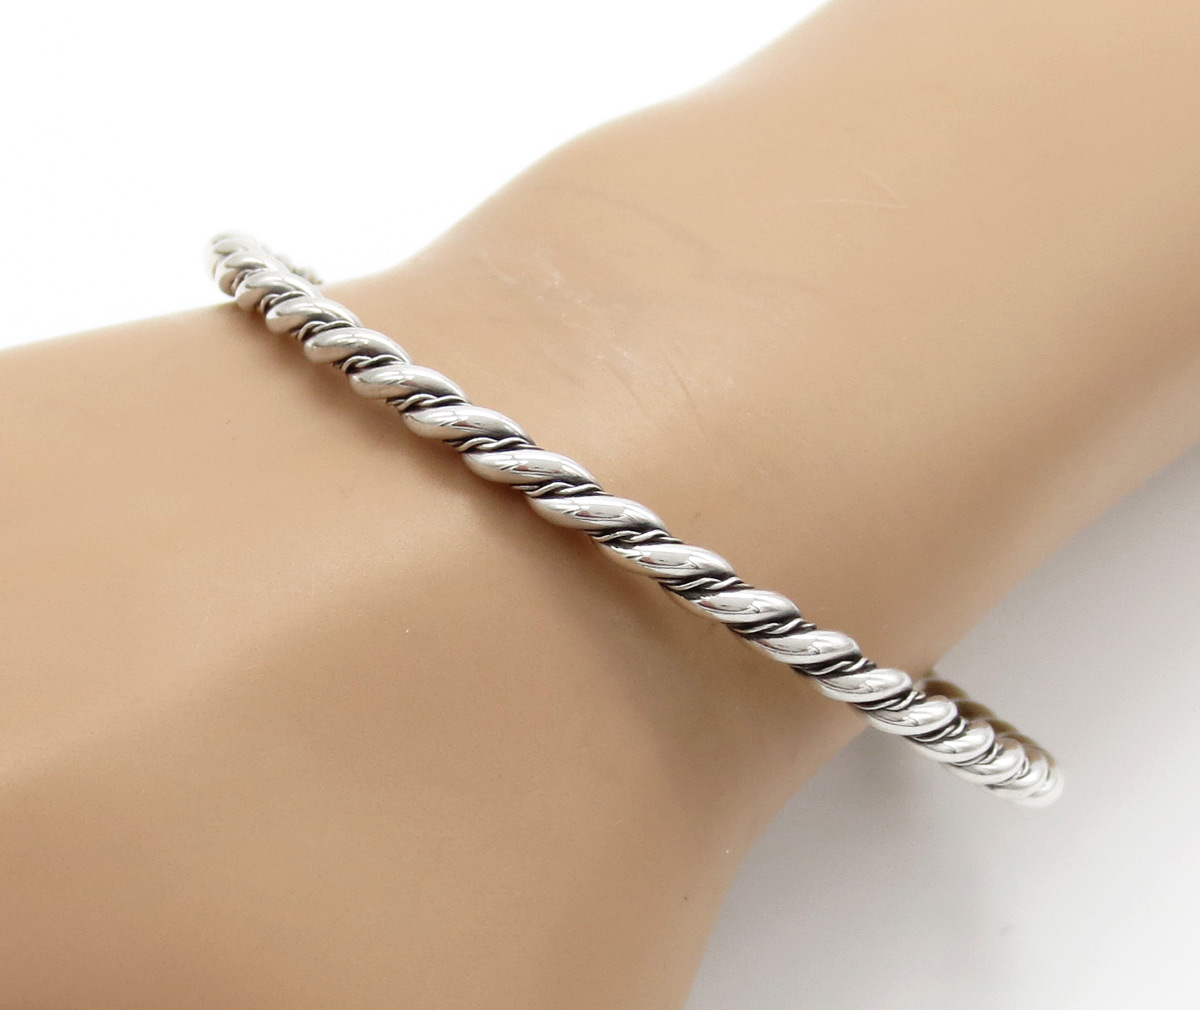 Classic Sterling Silver Bangle Bracelet Native American Jewelry - 6153rb